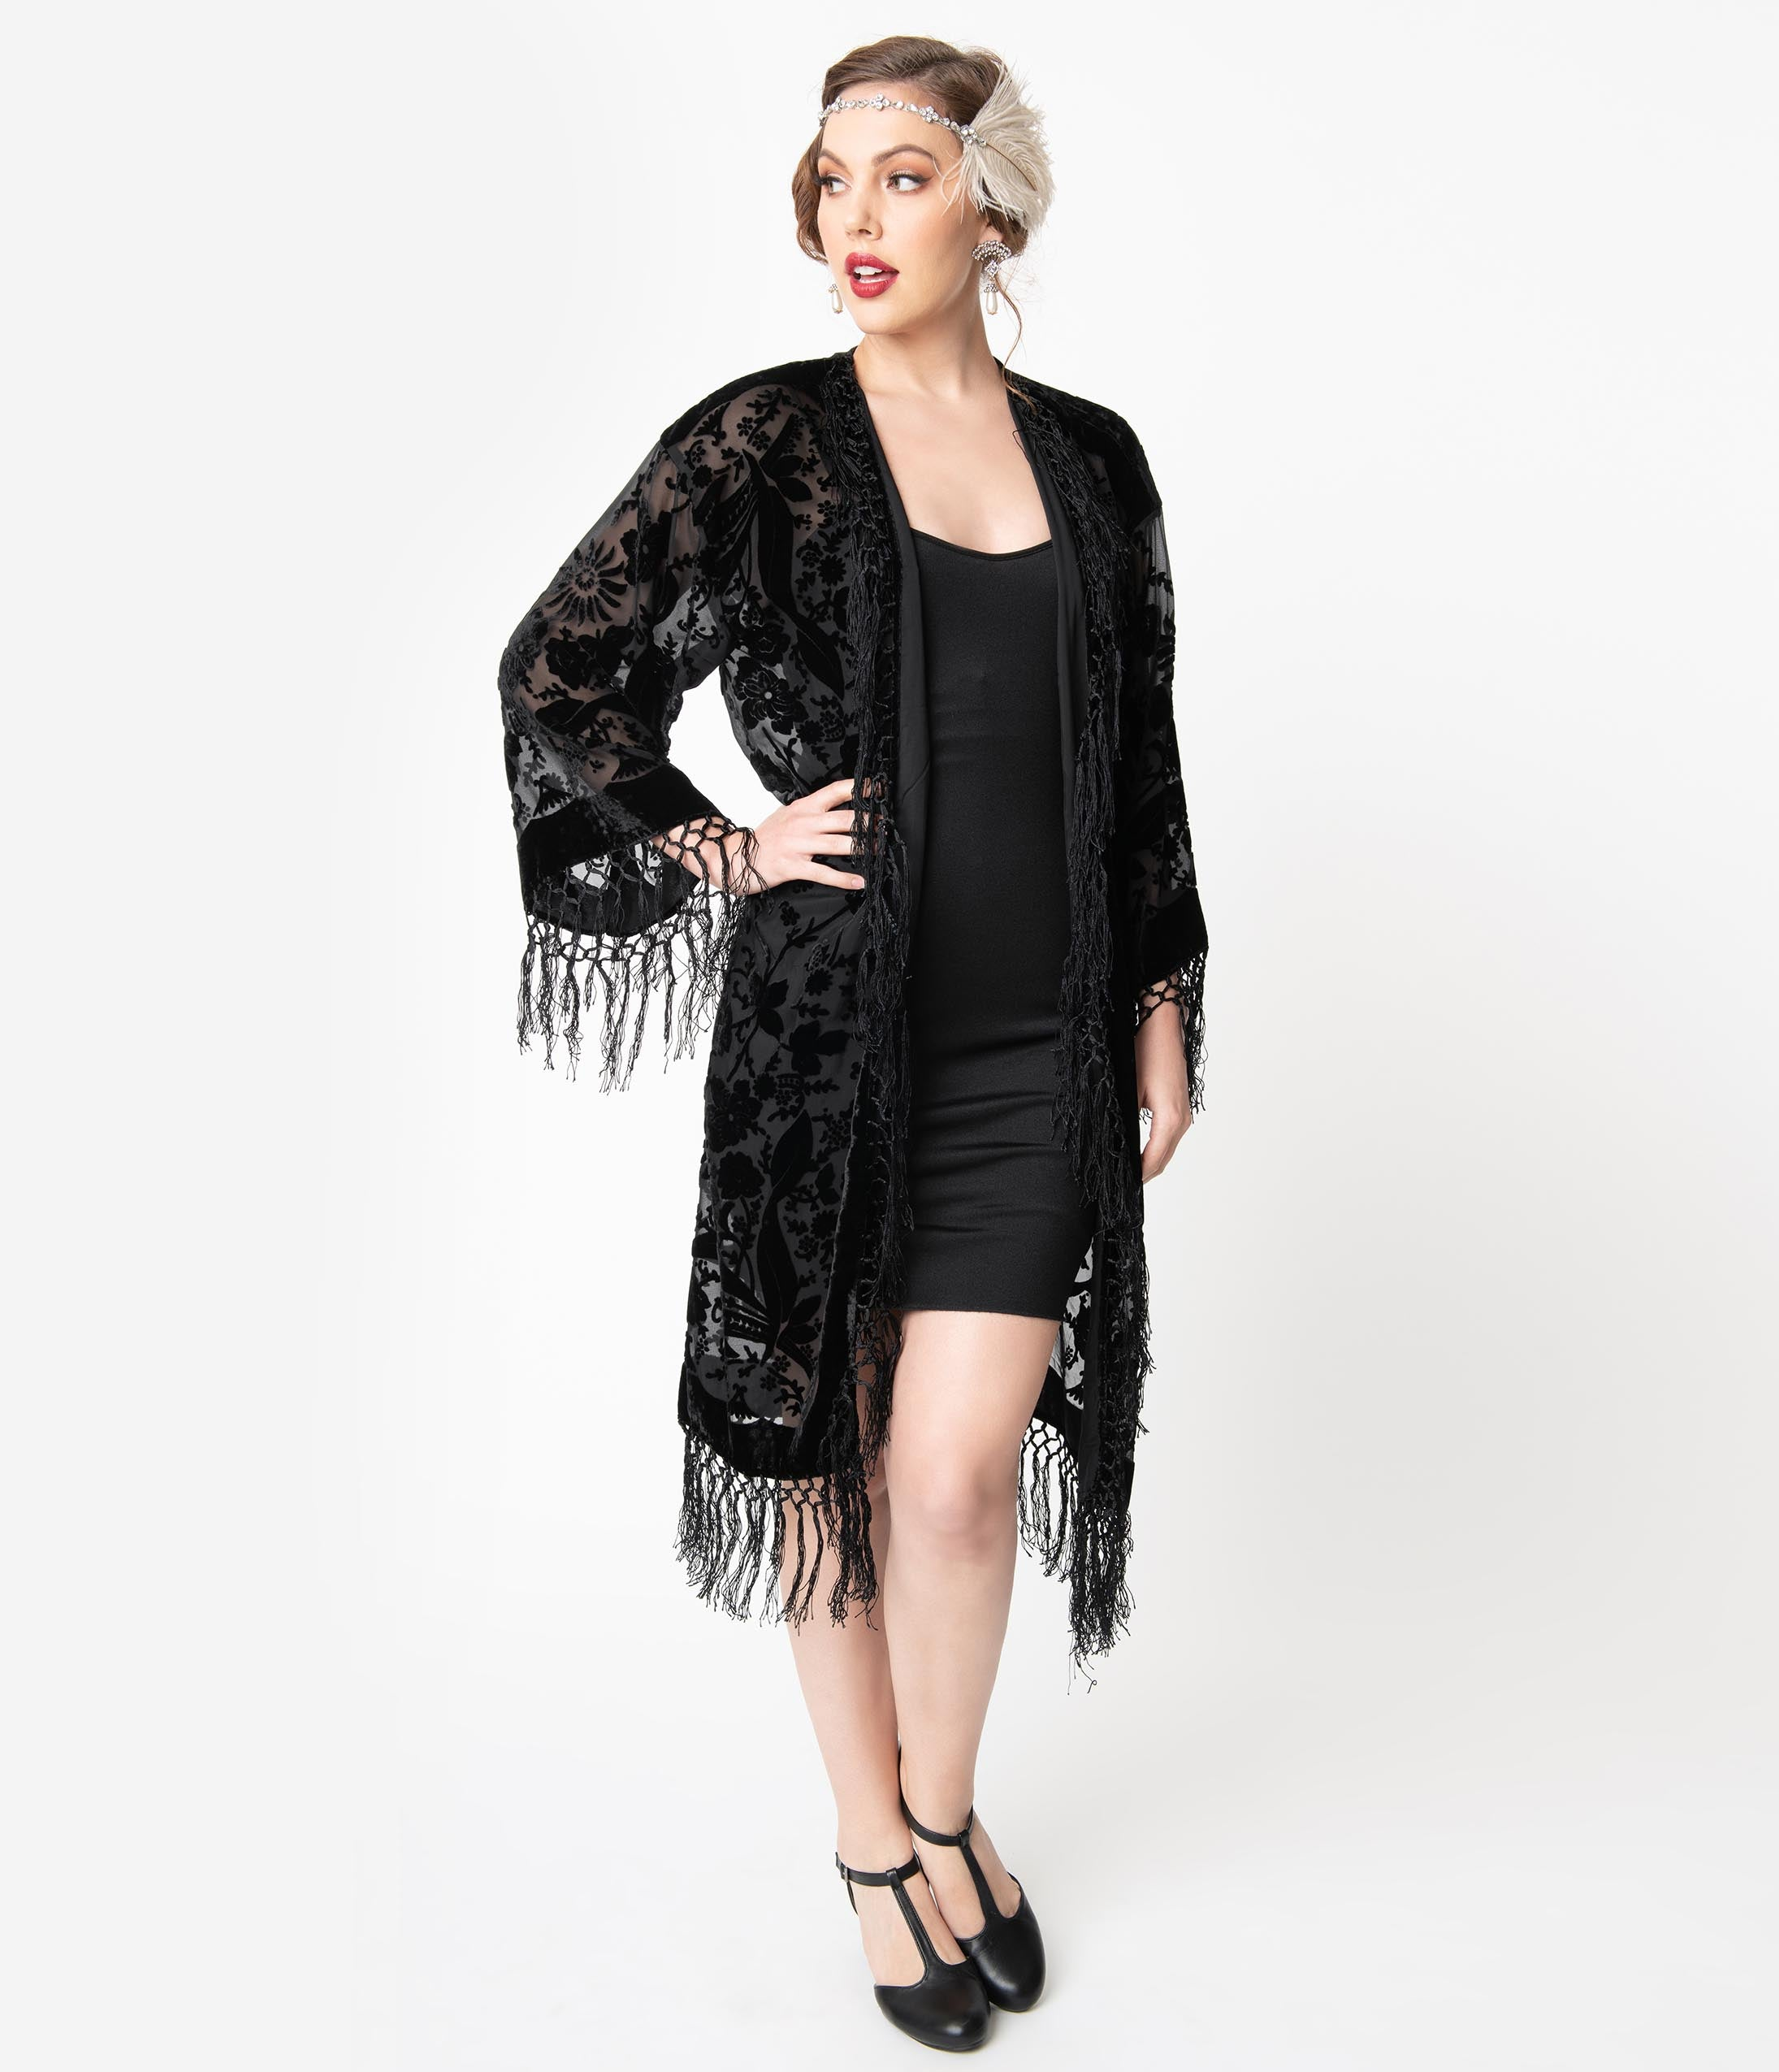 Vintage Coats & Jackets | Retro Coats and Jackets 1920S Style Black Devore Velvet Fringe Long Flapper Coat $224.00 AT vintagedancer.com